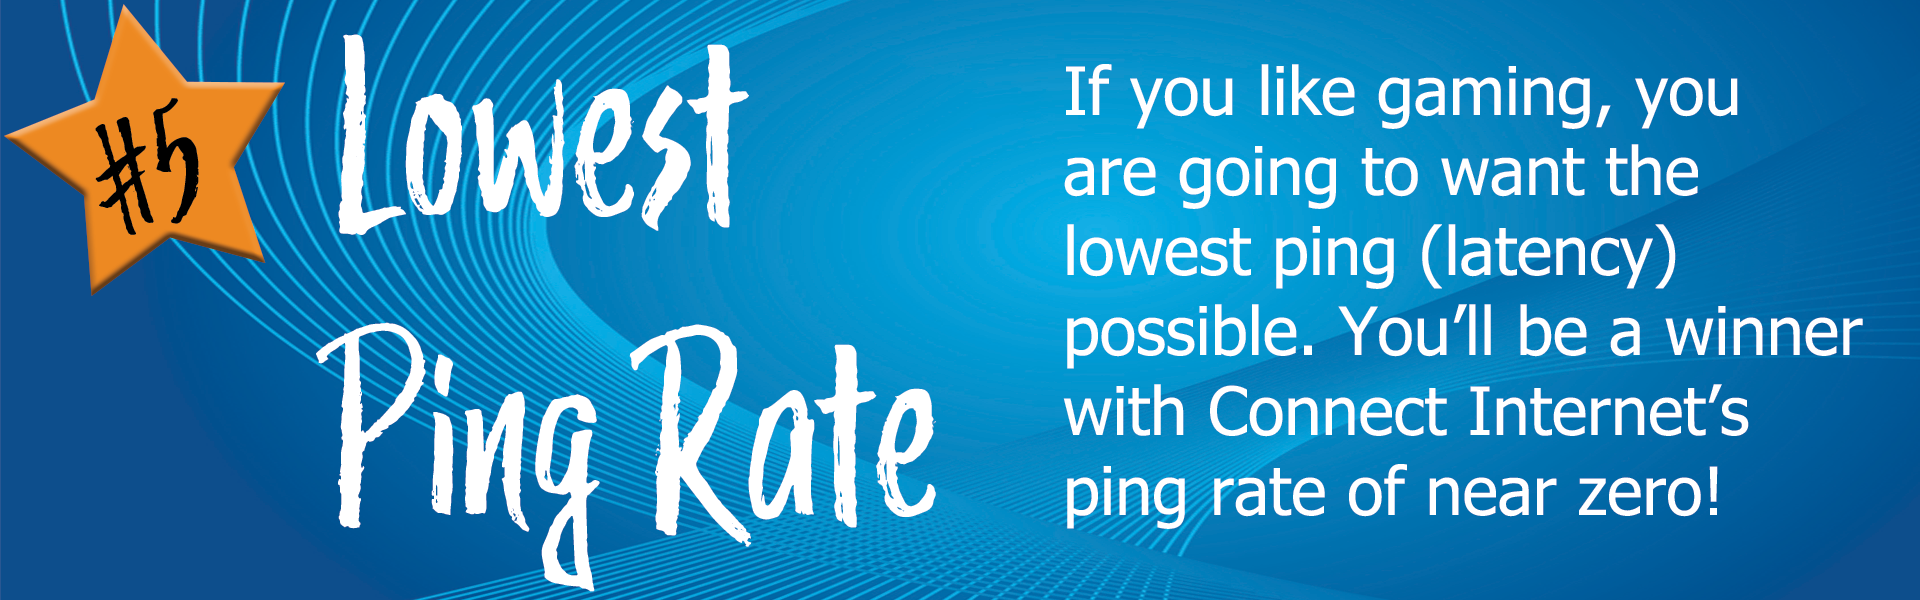 number five reason to connect is a low ping rate